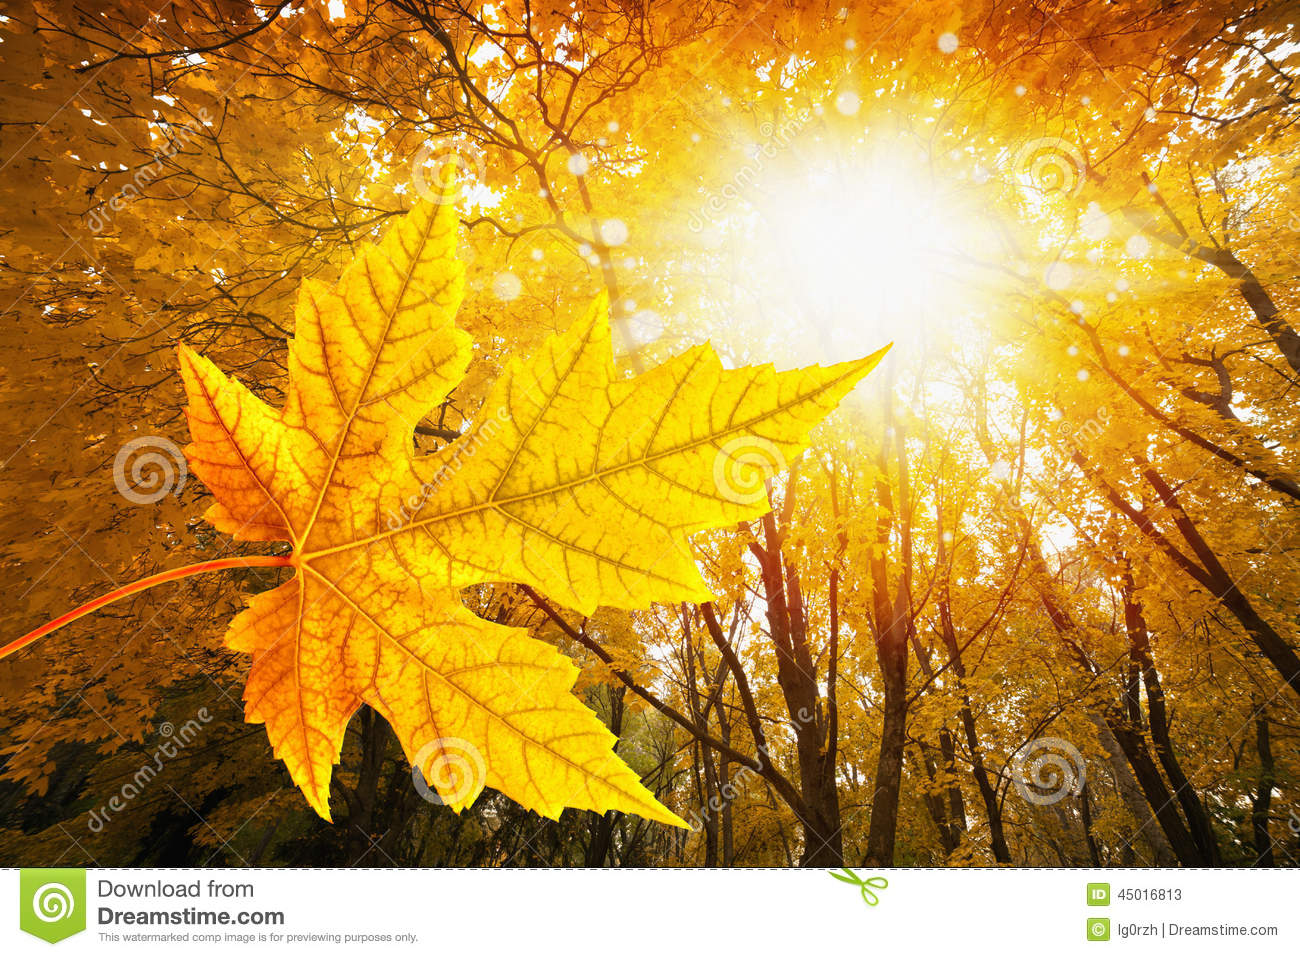 Fall Leaves Iphone 7 Wallpaper Fall In Forest Stock Image Image Of Leaves Yellow Maple